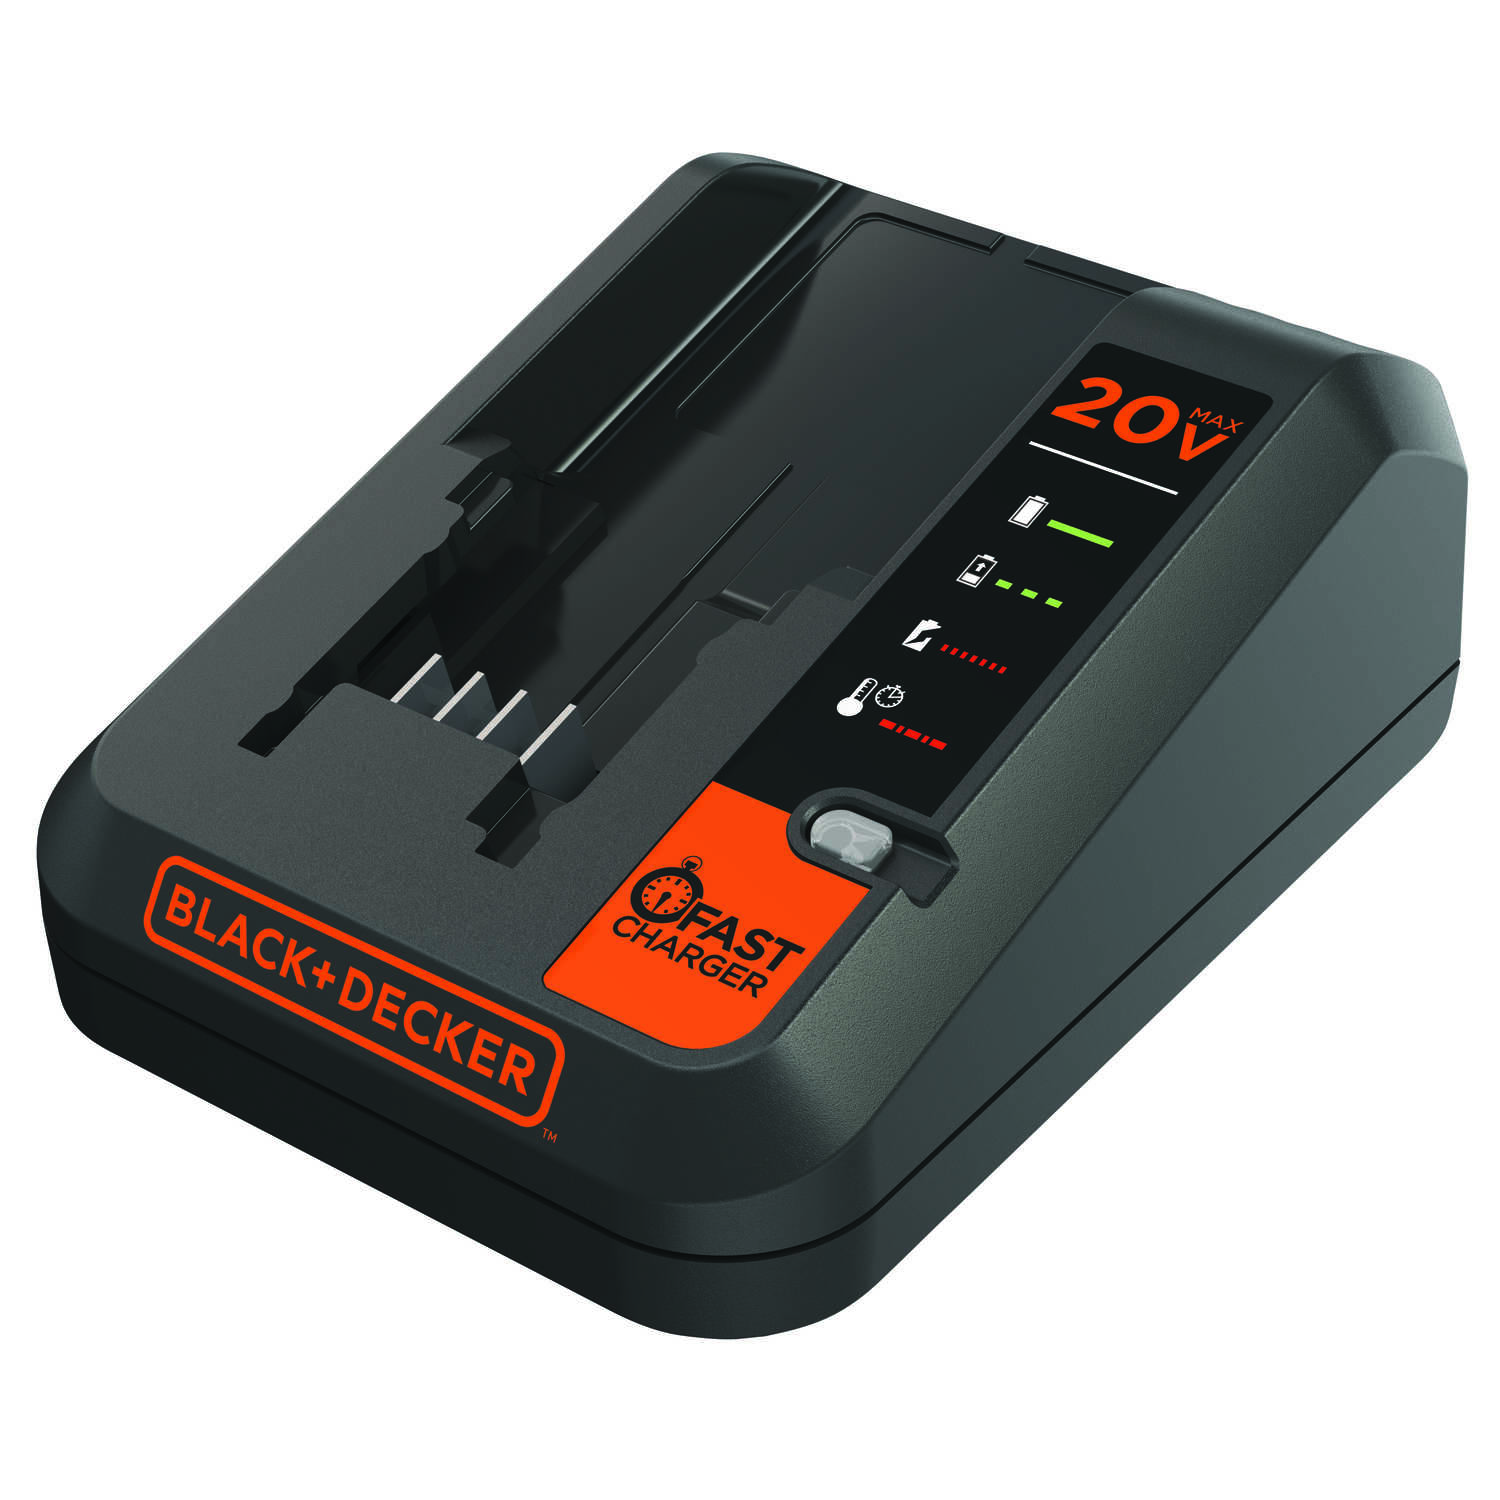 Black and Decker  20 volt Lithium-Ion  Battery Charger  1 pc.